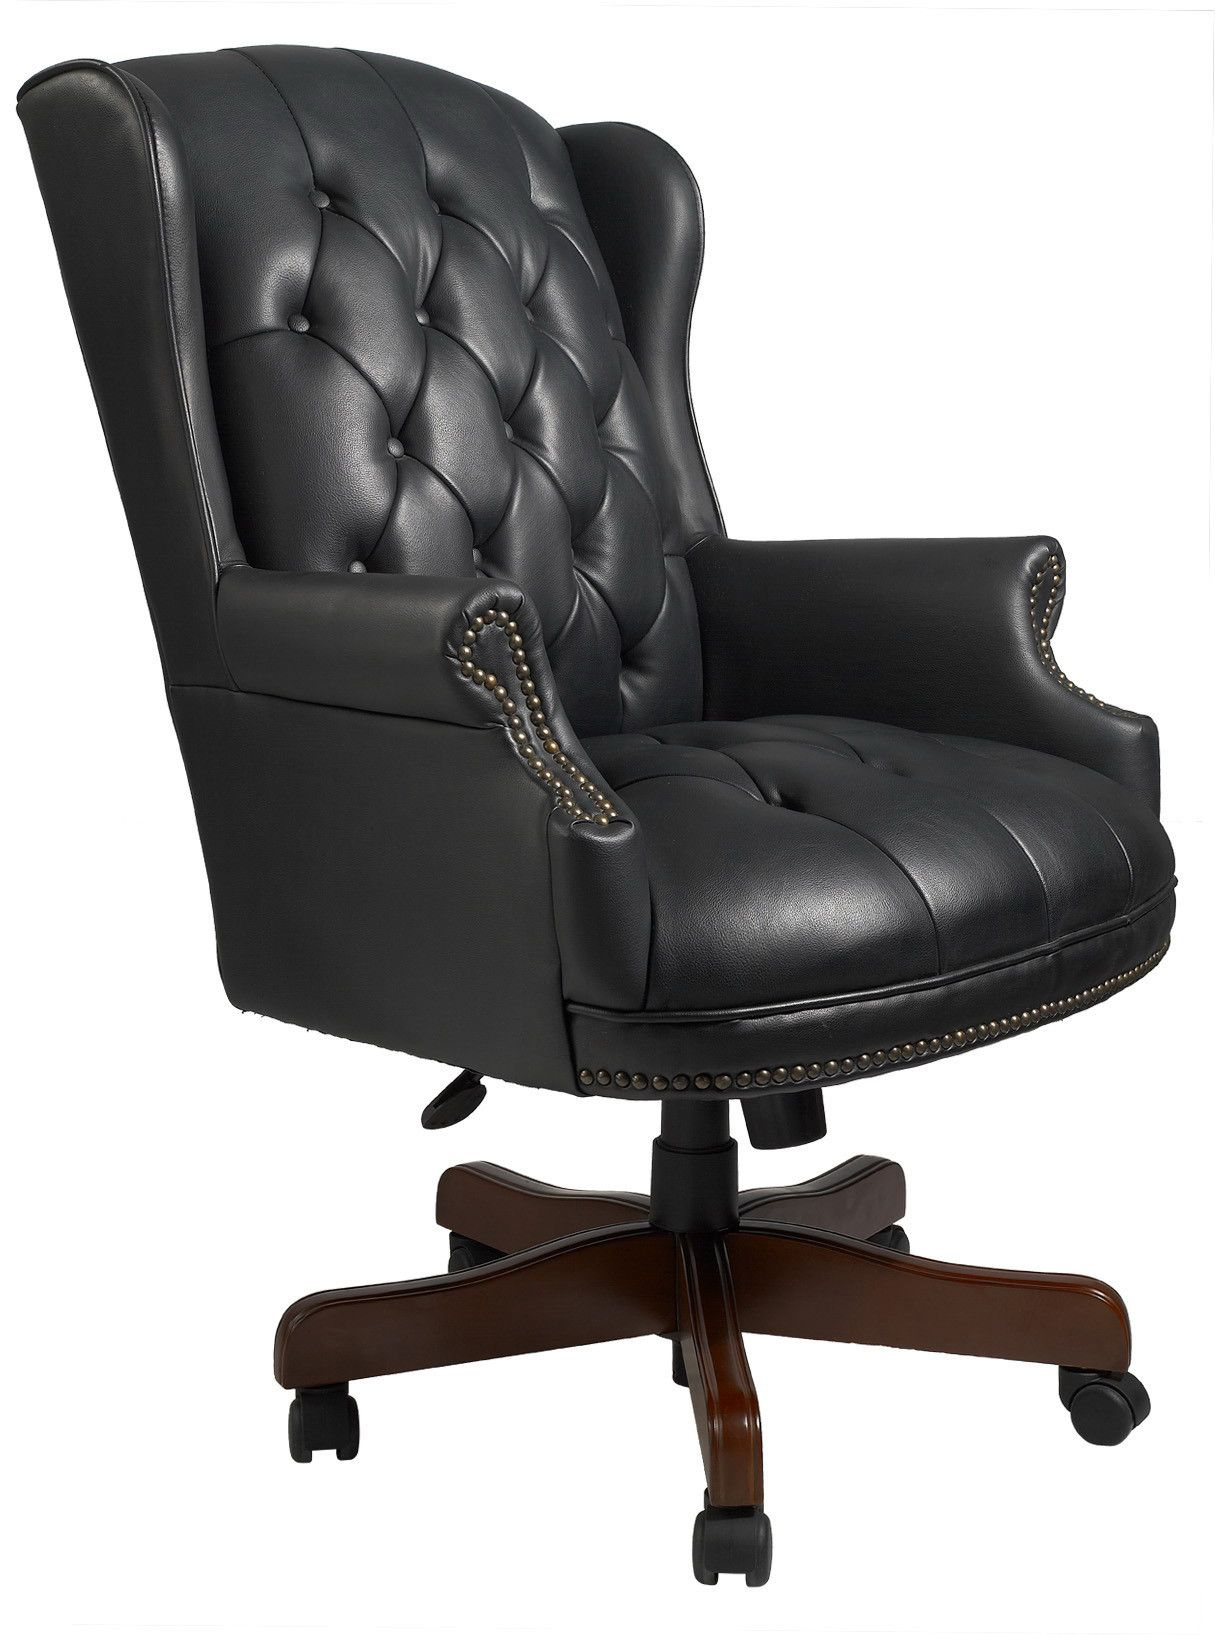 Astrid Tufted Office Chair Traditional office chairs